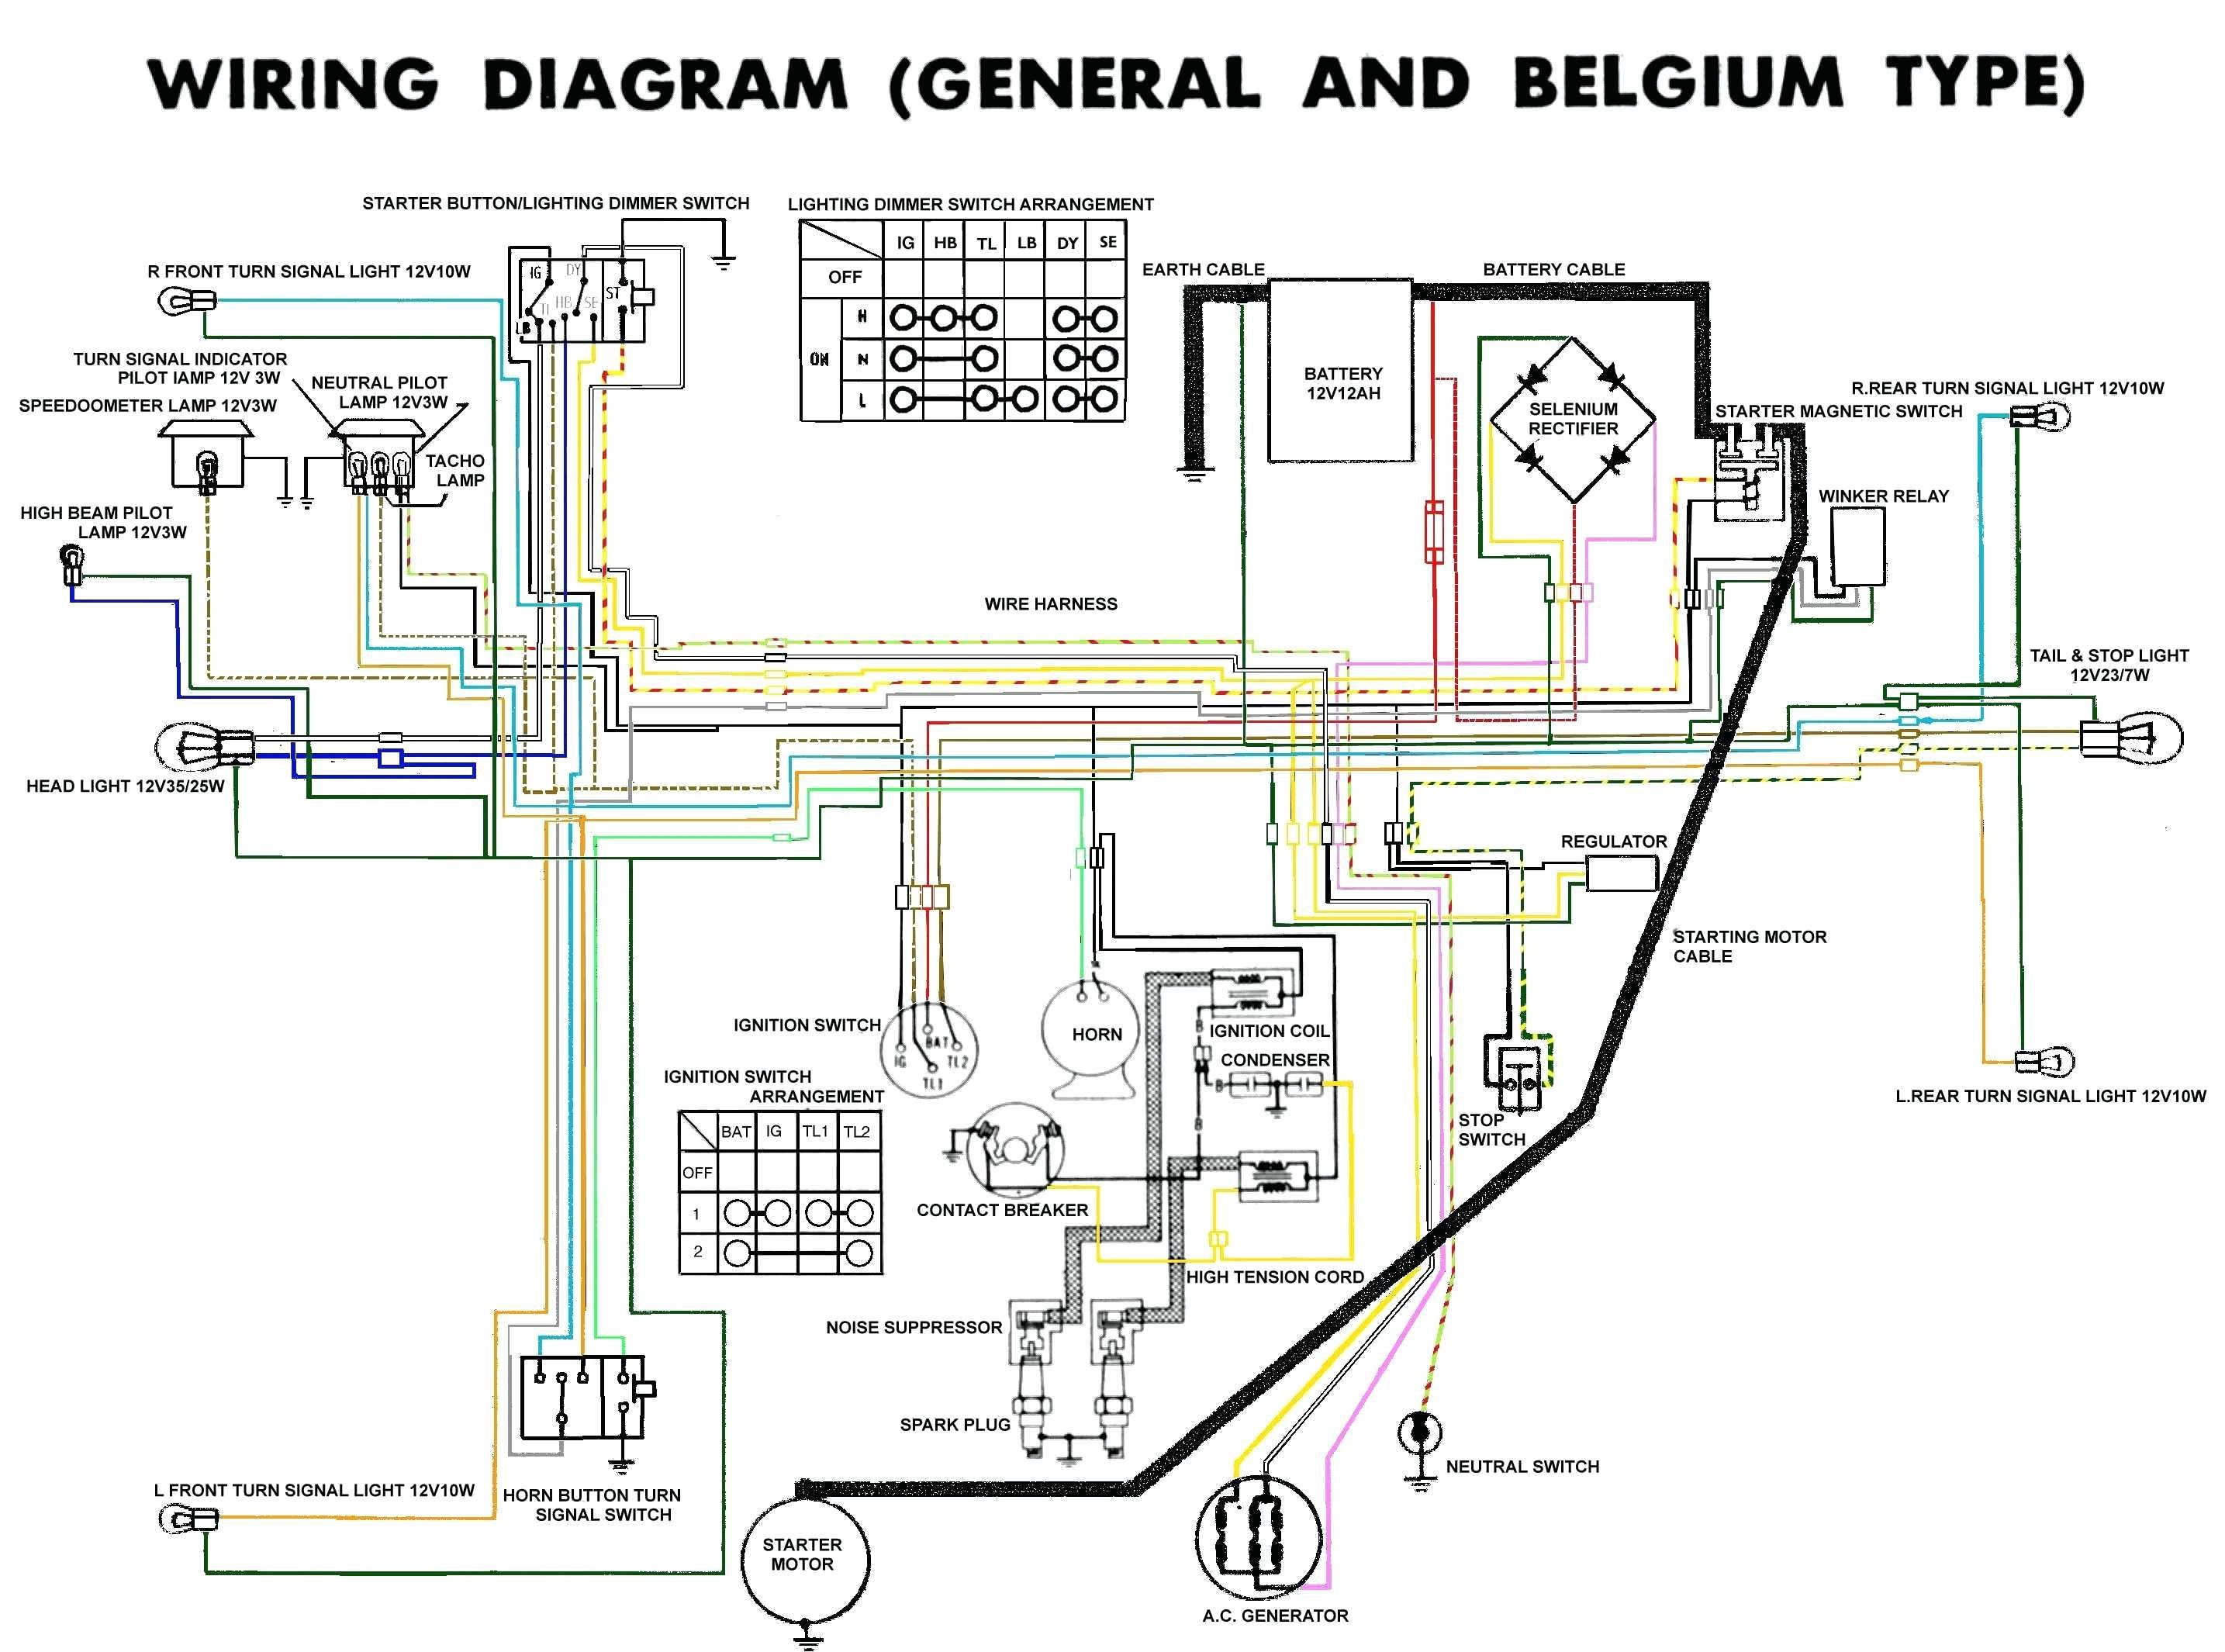 Moped Wiring Diagram from lh3.googleusercontent.com